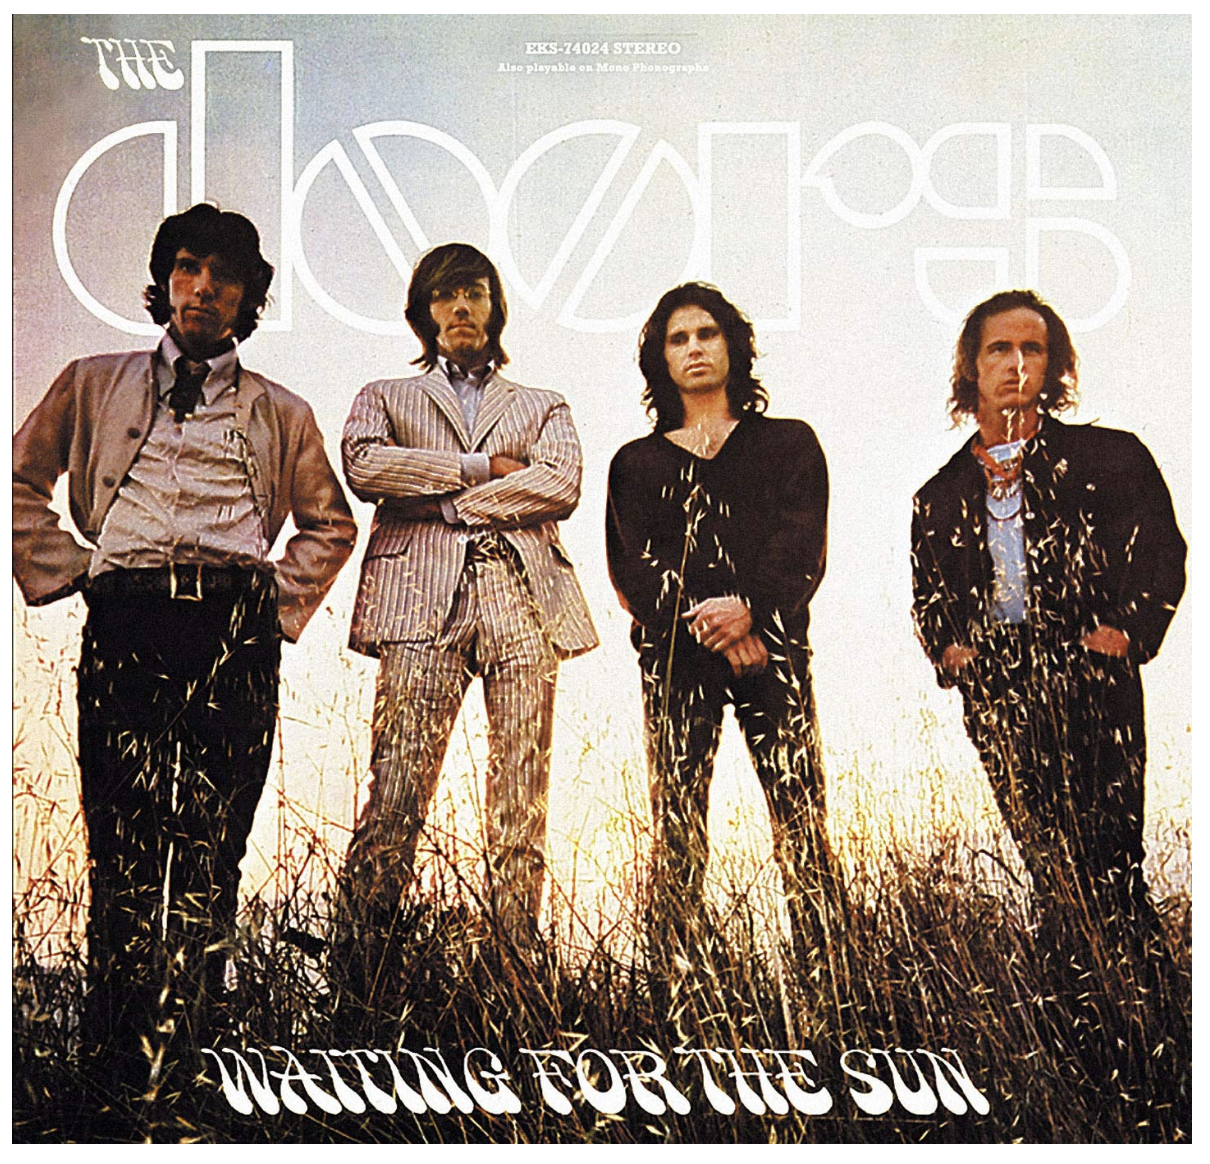 'Waiting for the Sun' - The Doors